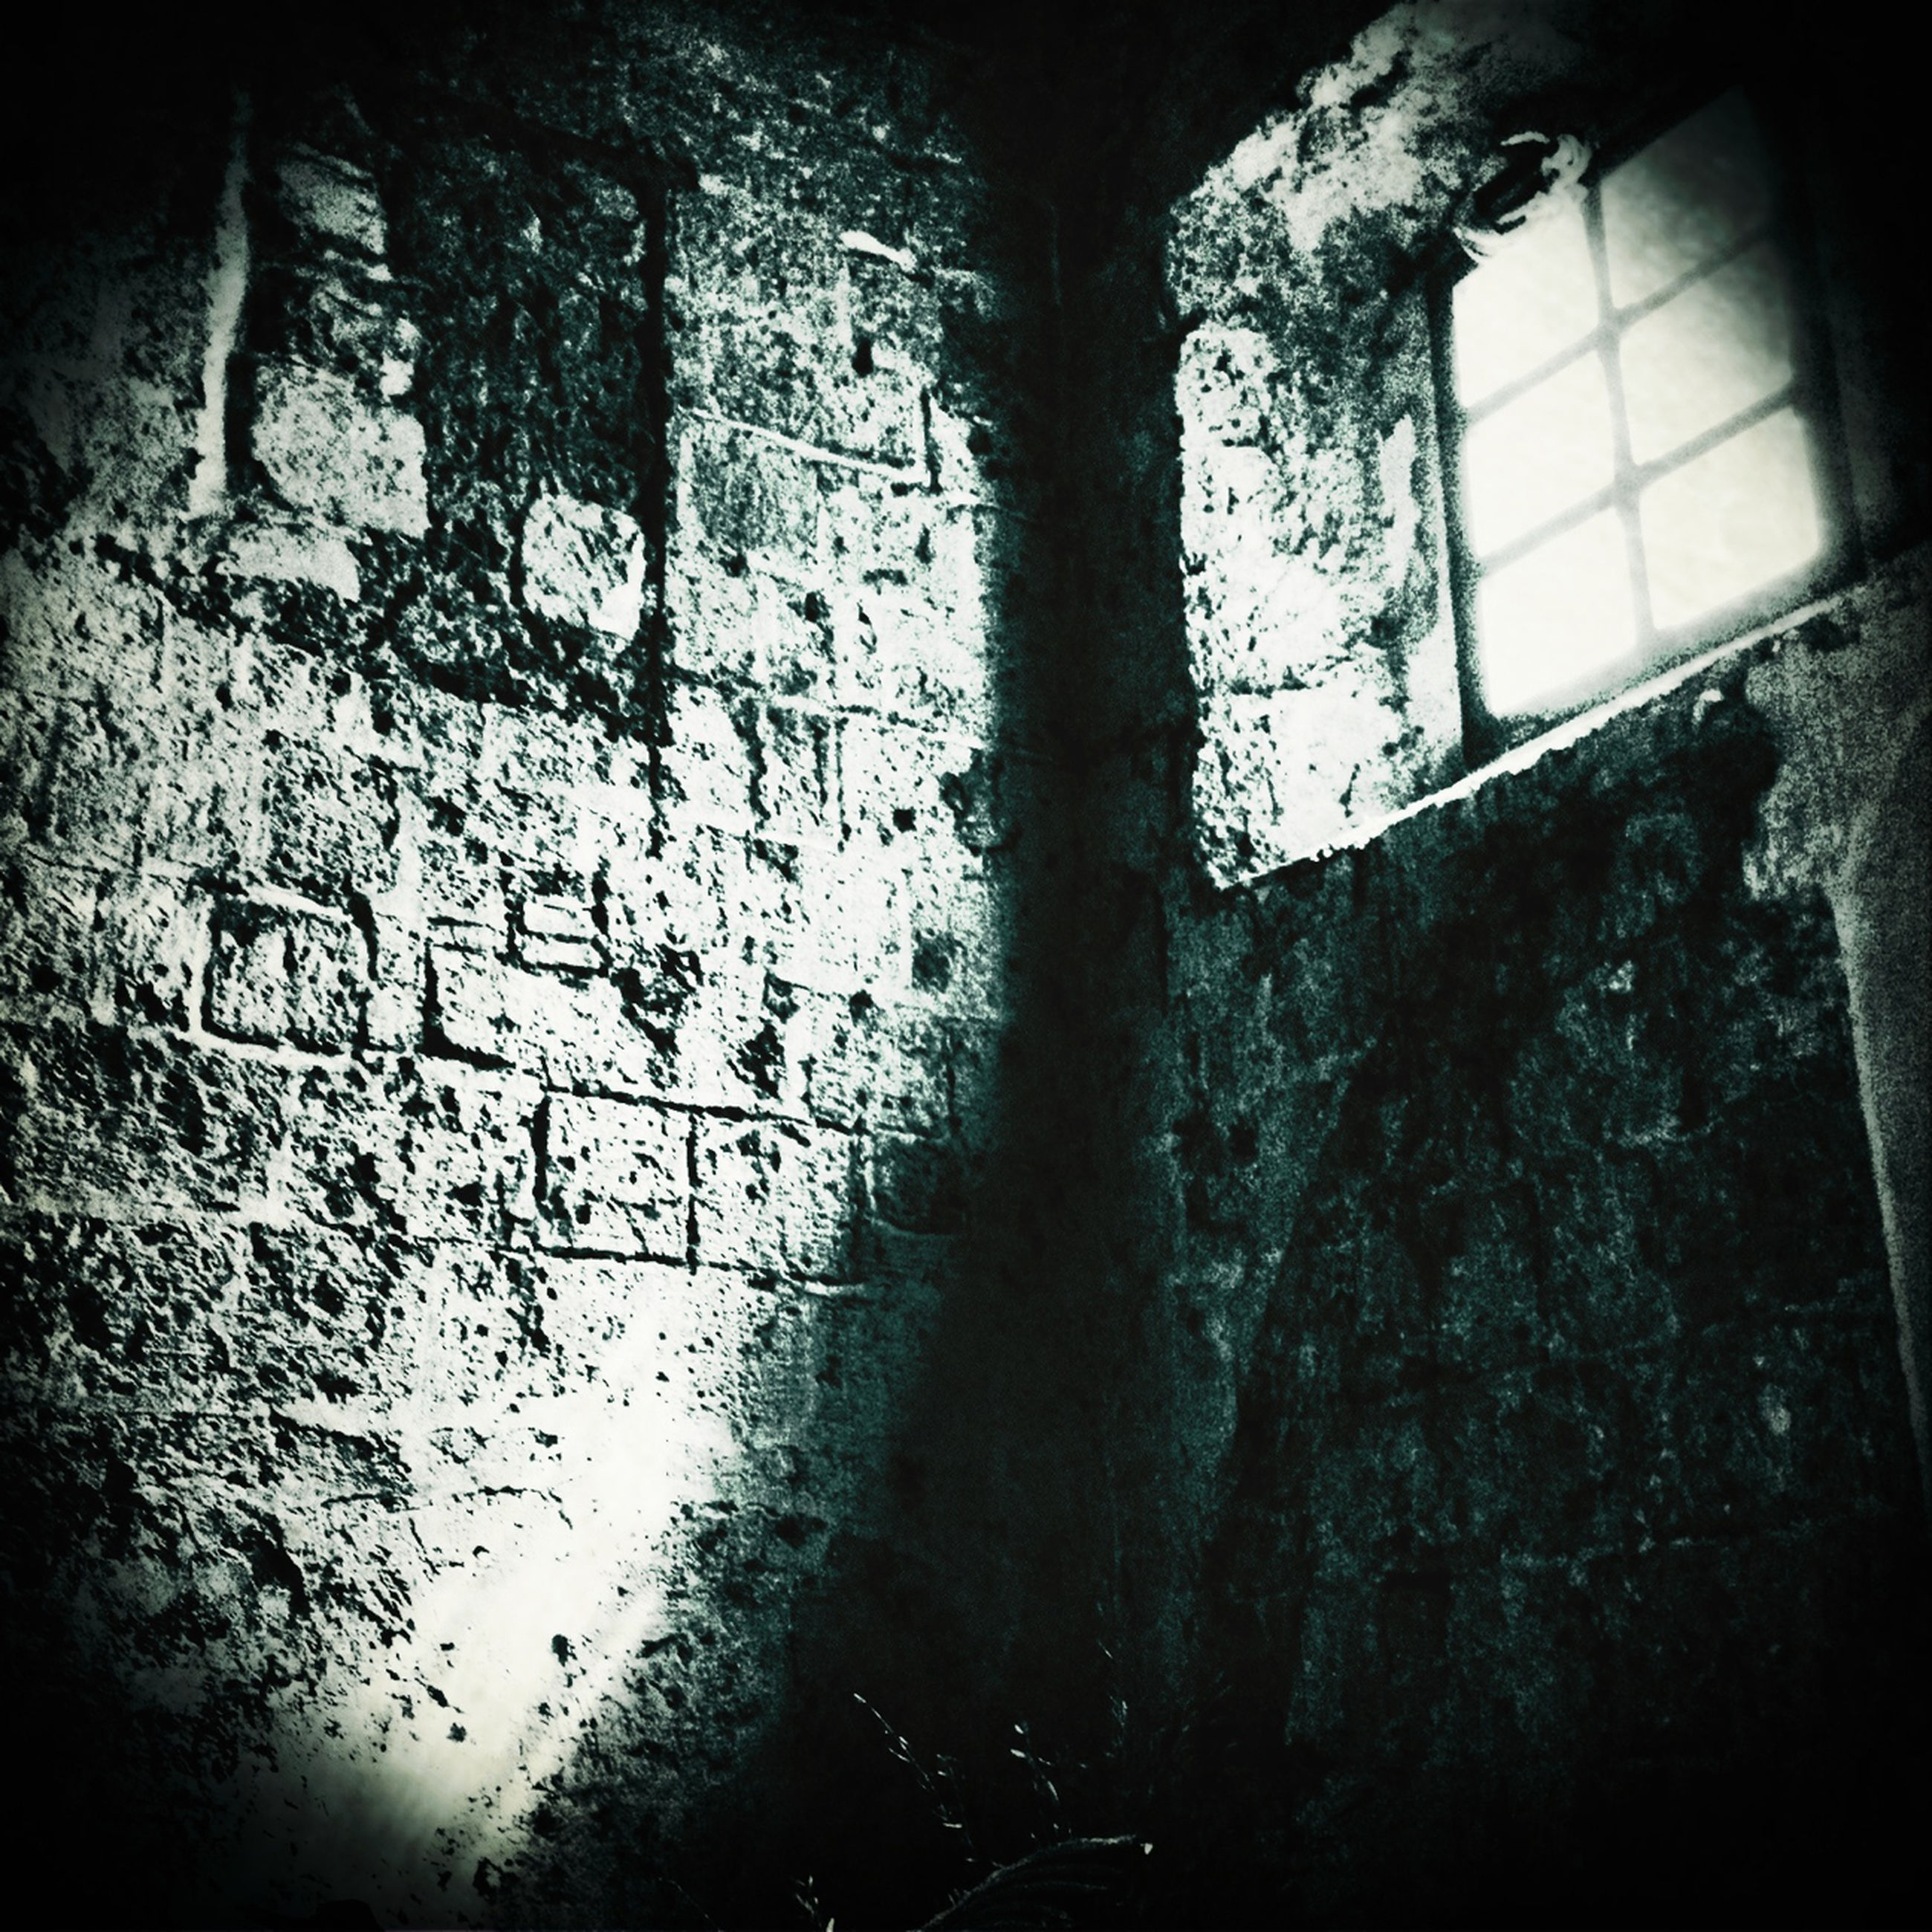 indoors, window, architecture, built structure, wall - building feature, abandoned, damaged, obsolete, shadow, wall, old, sunlight, deterioration, graffiti, run-down, silhouette, weathered, day, building, no people